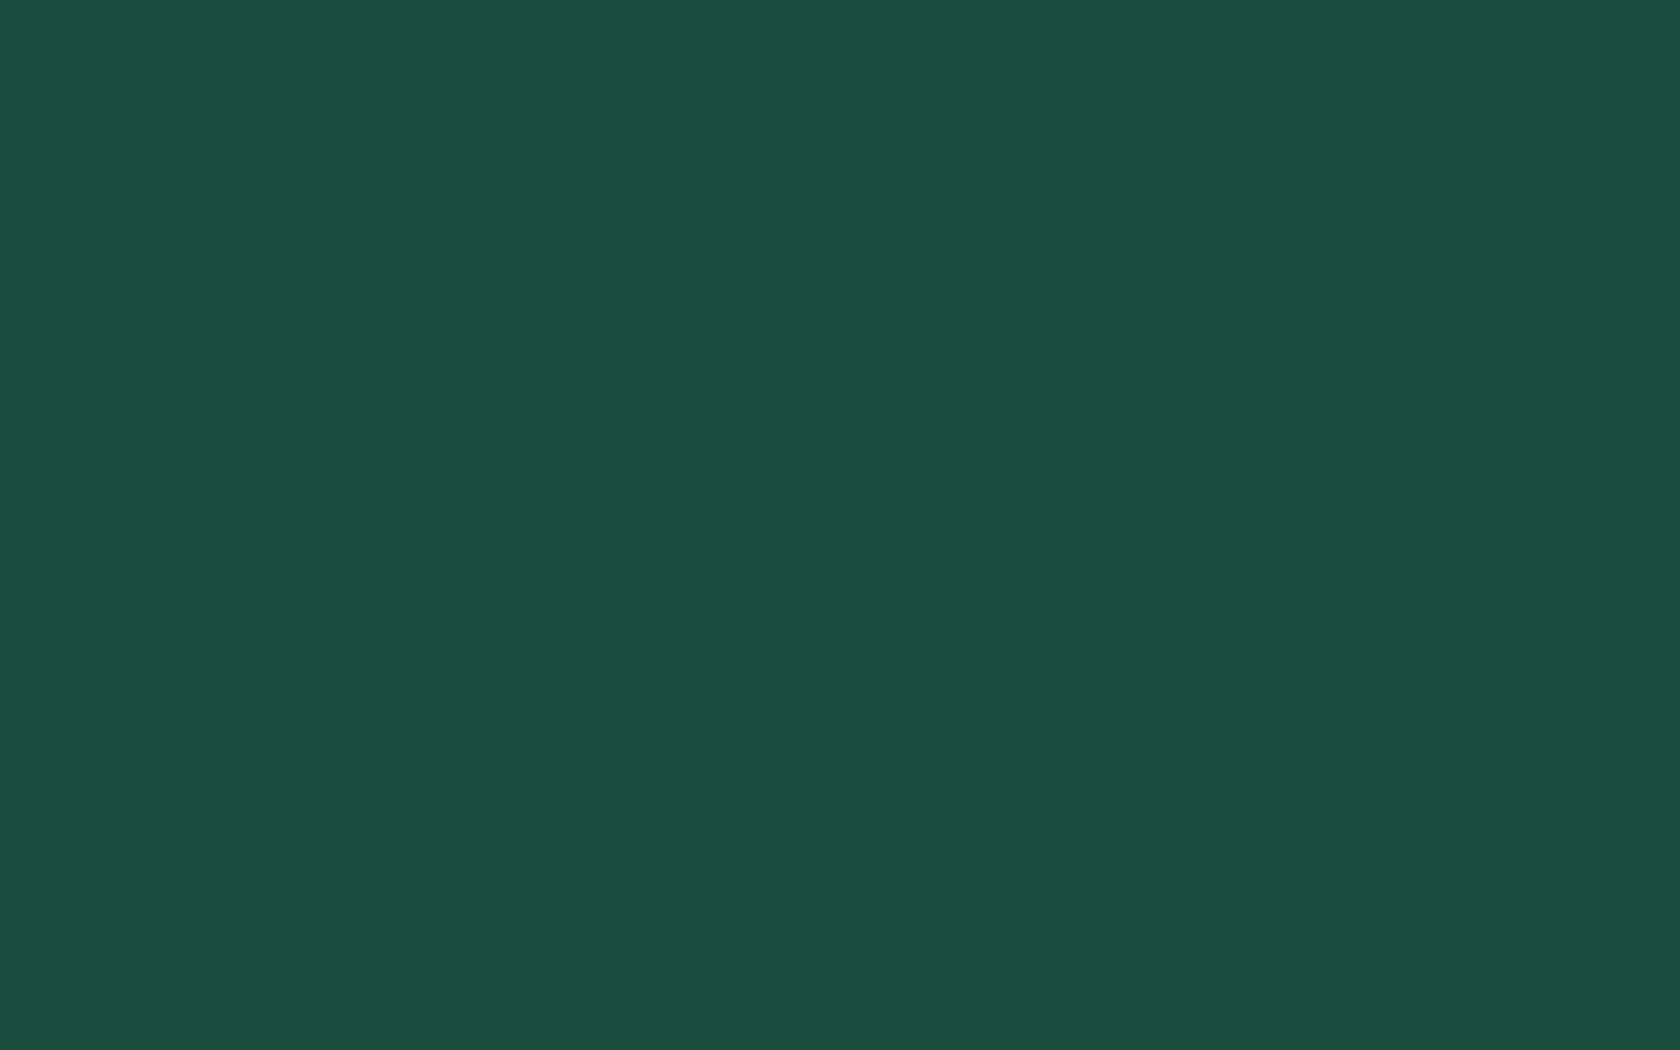 1680x1050 English Green Solid Color Background